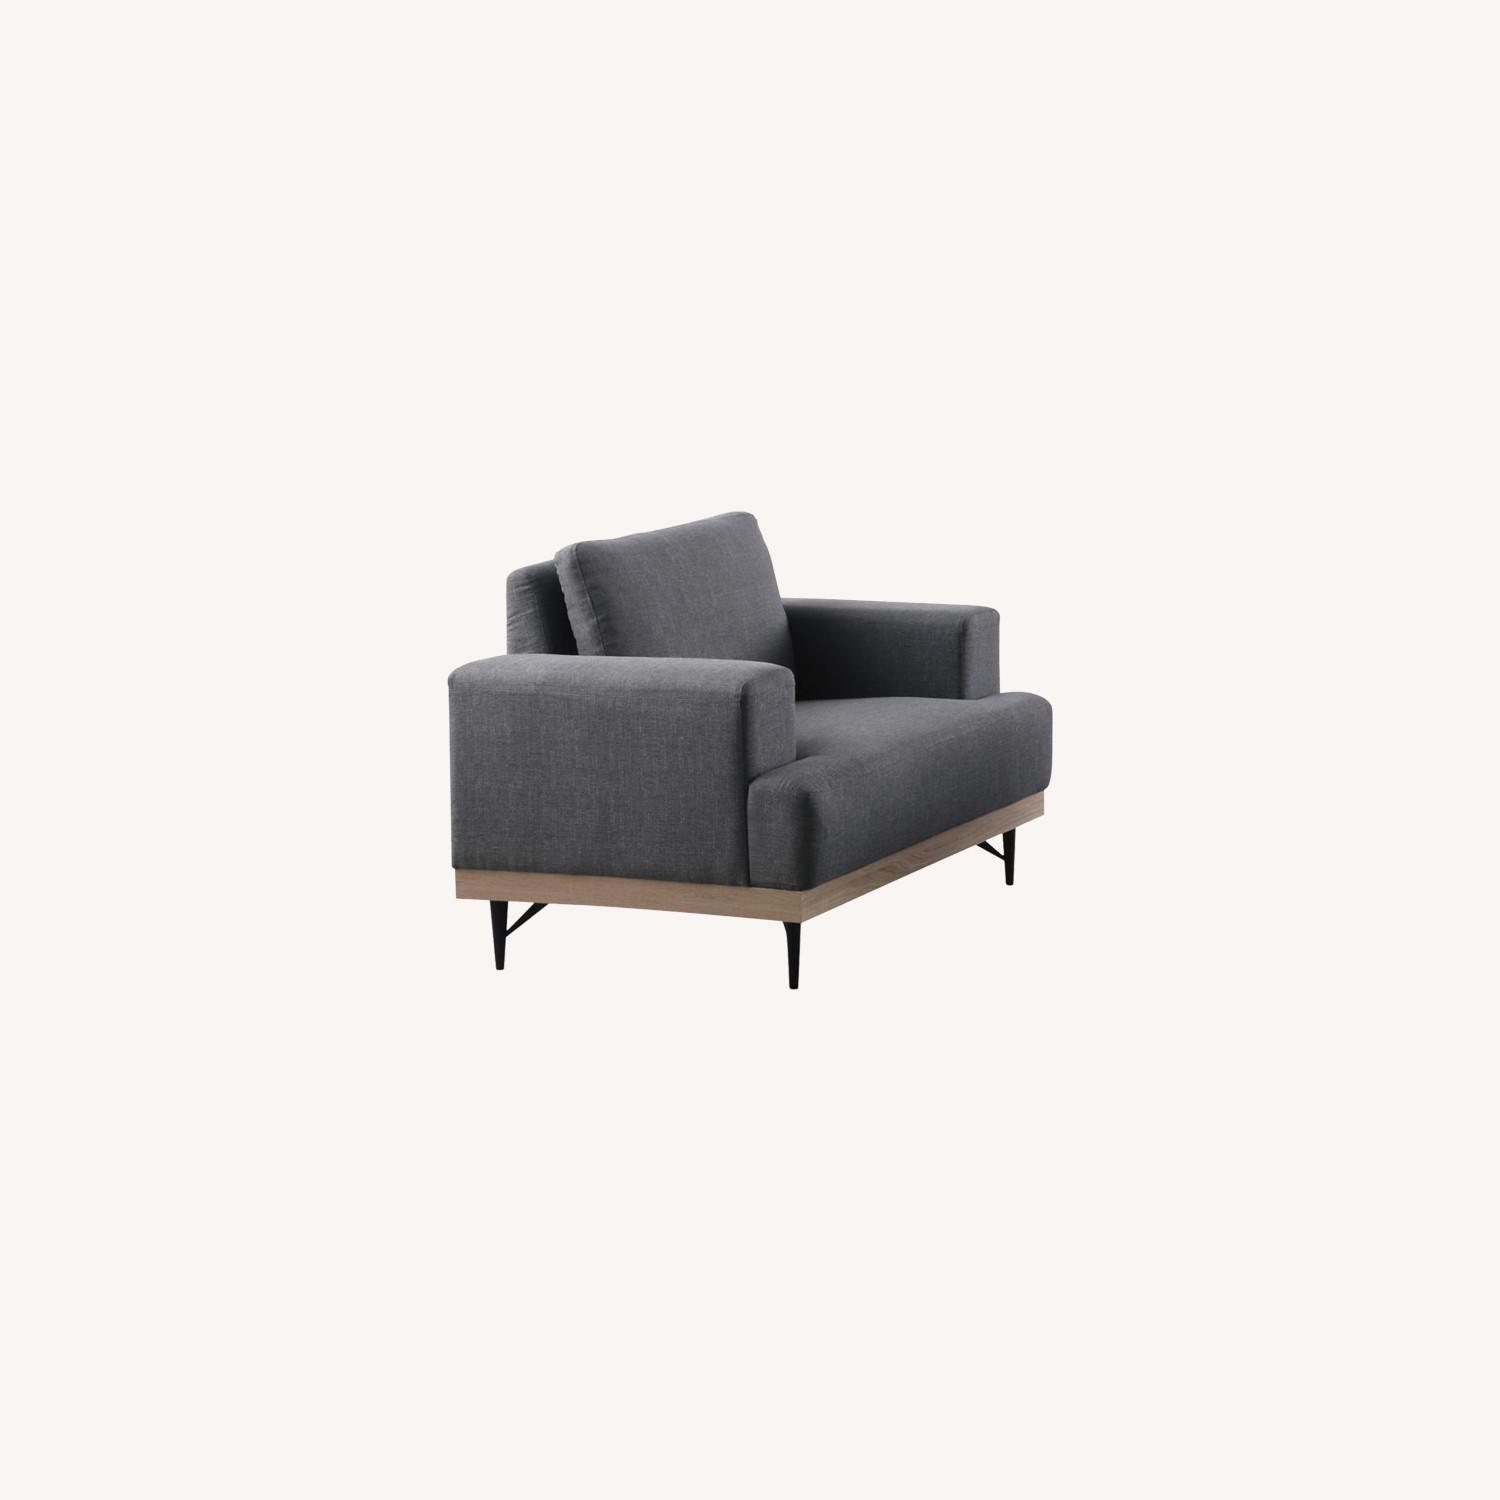 Modern Chair In Charcoal Faux Linen Upholstery - image-4